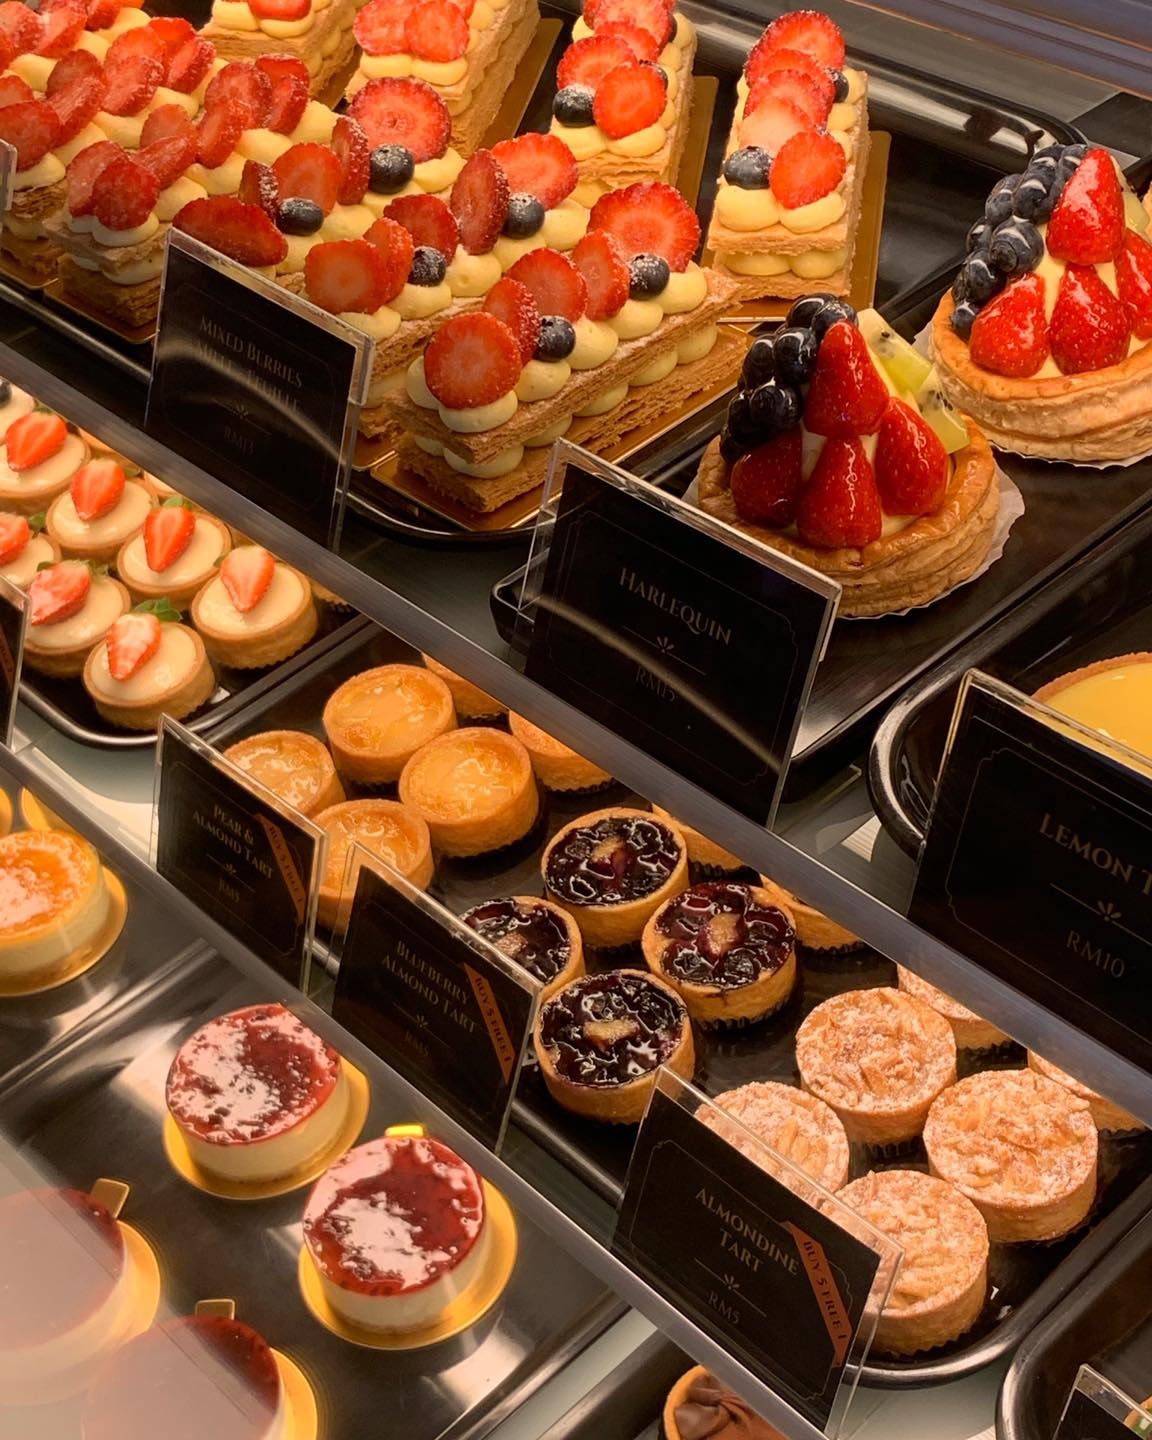 Pastries and desserts served at Encore Patisserie Café (Photo Encore Patisserie Café on Facebook)